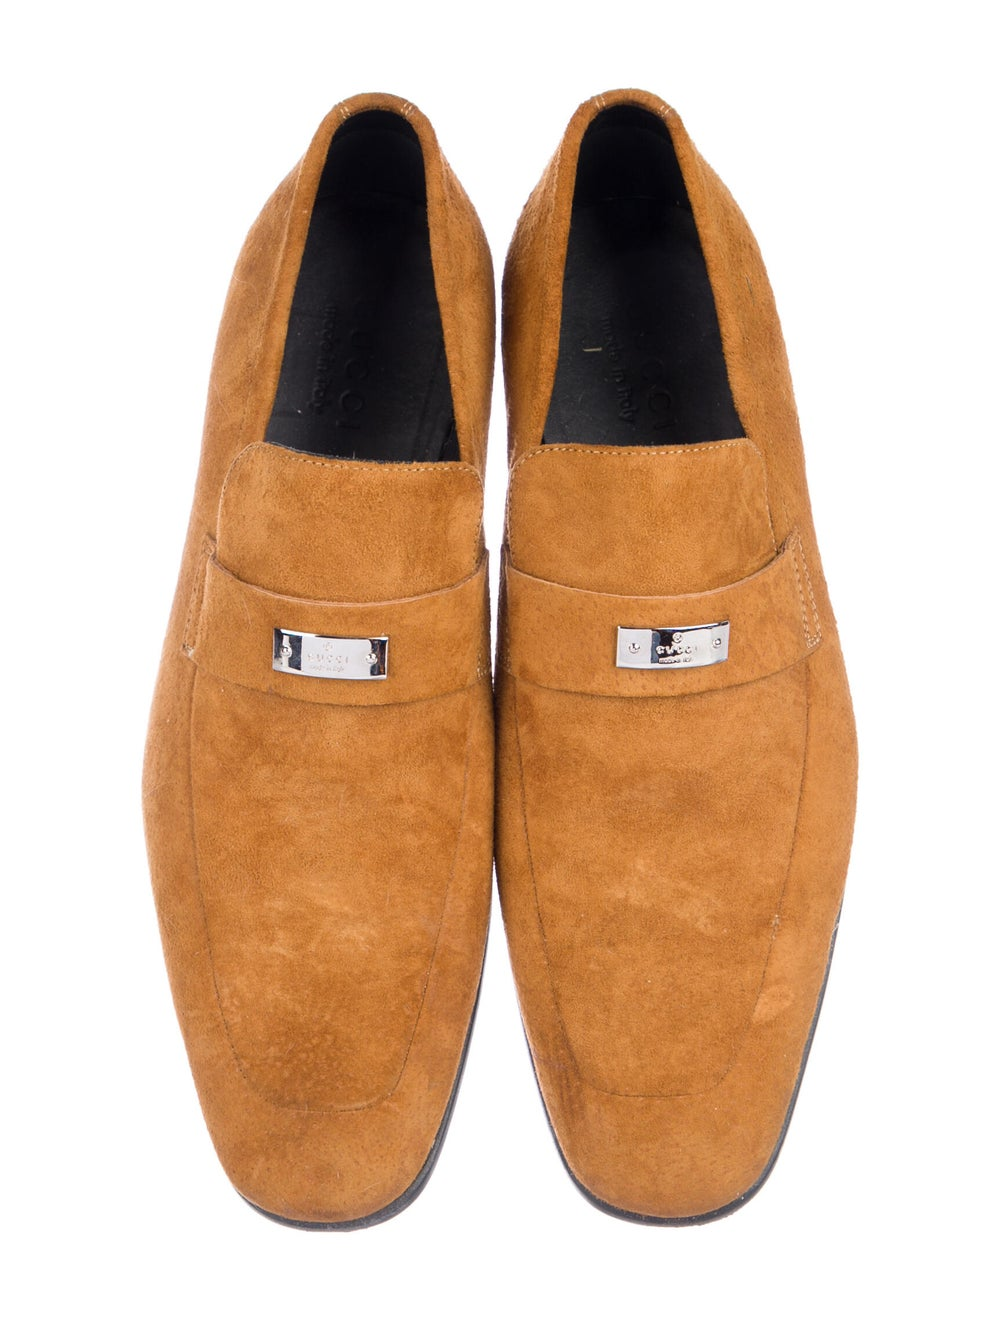 Gucci Suede Loafers Yellow - image 3